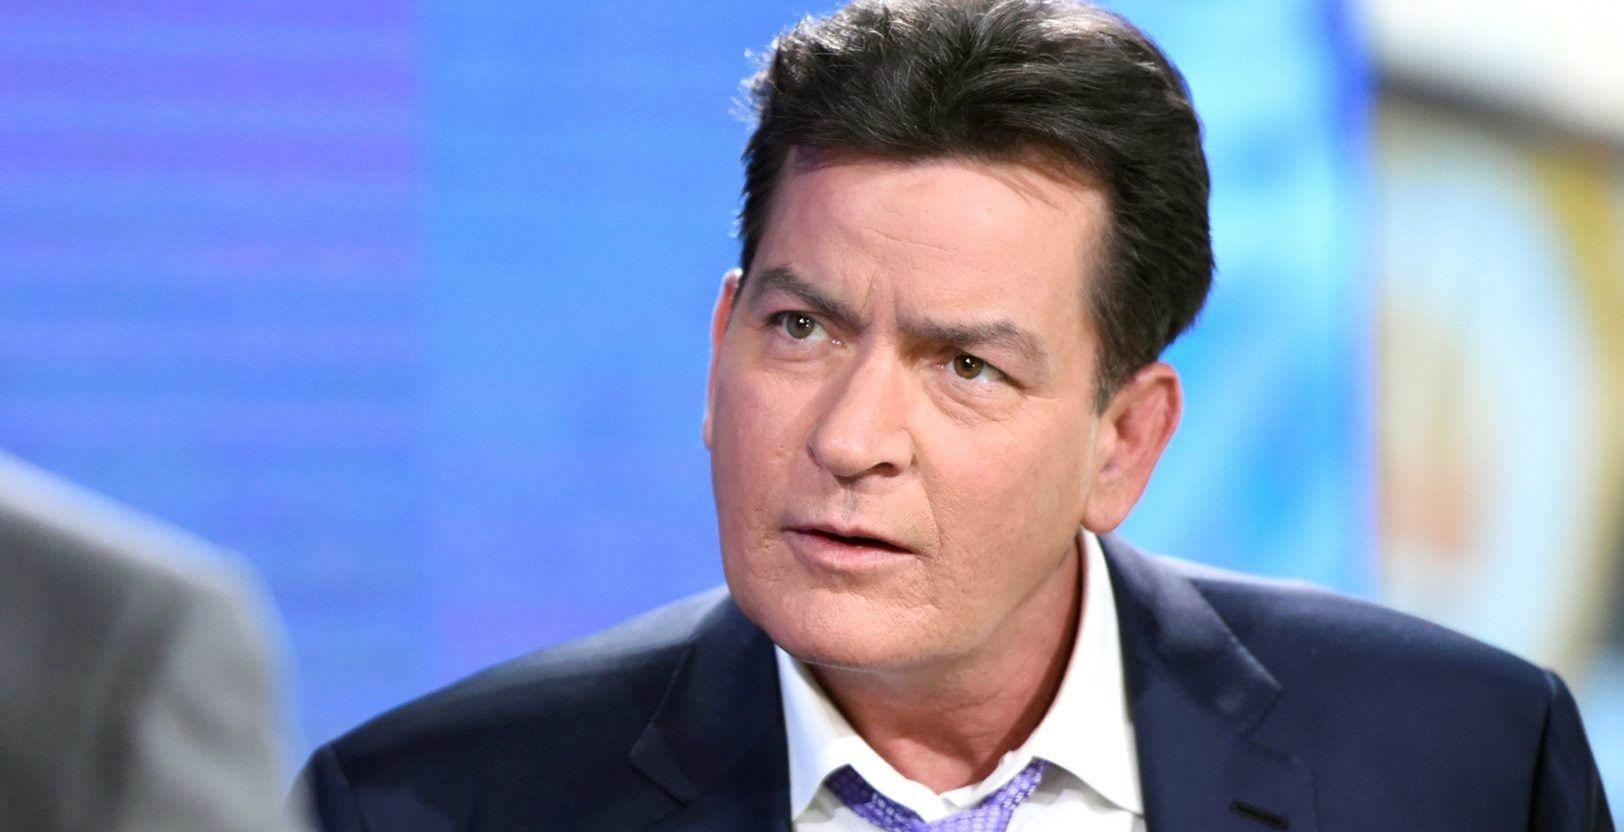 Has Hollywood Cancelled Charlie Sheen? | TheThings